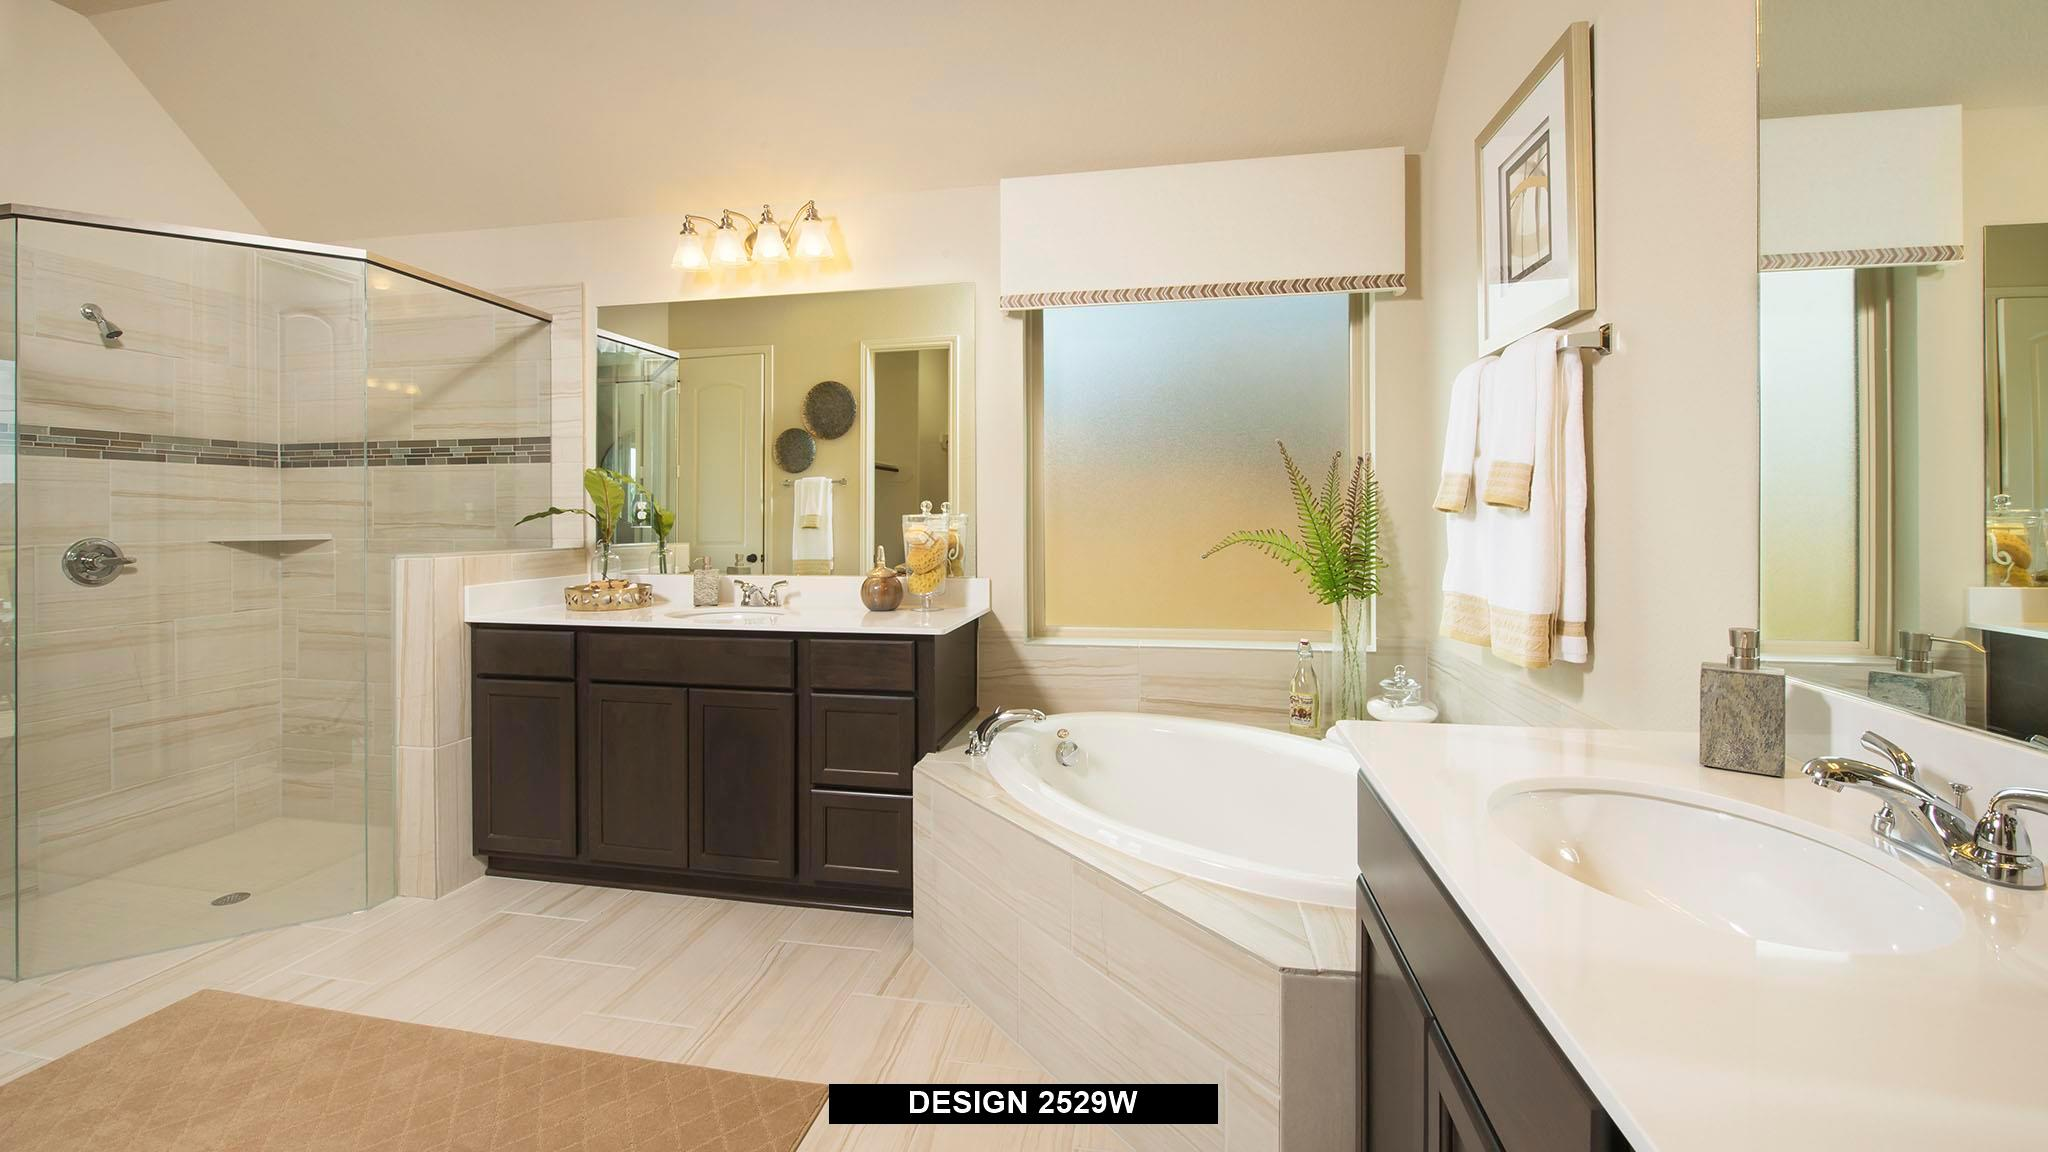 Bathroom featured in the 2529W By Perry Homes in Houston, TX